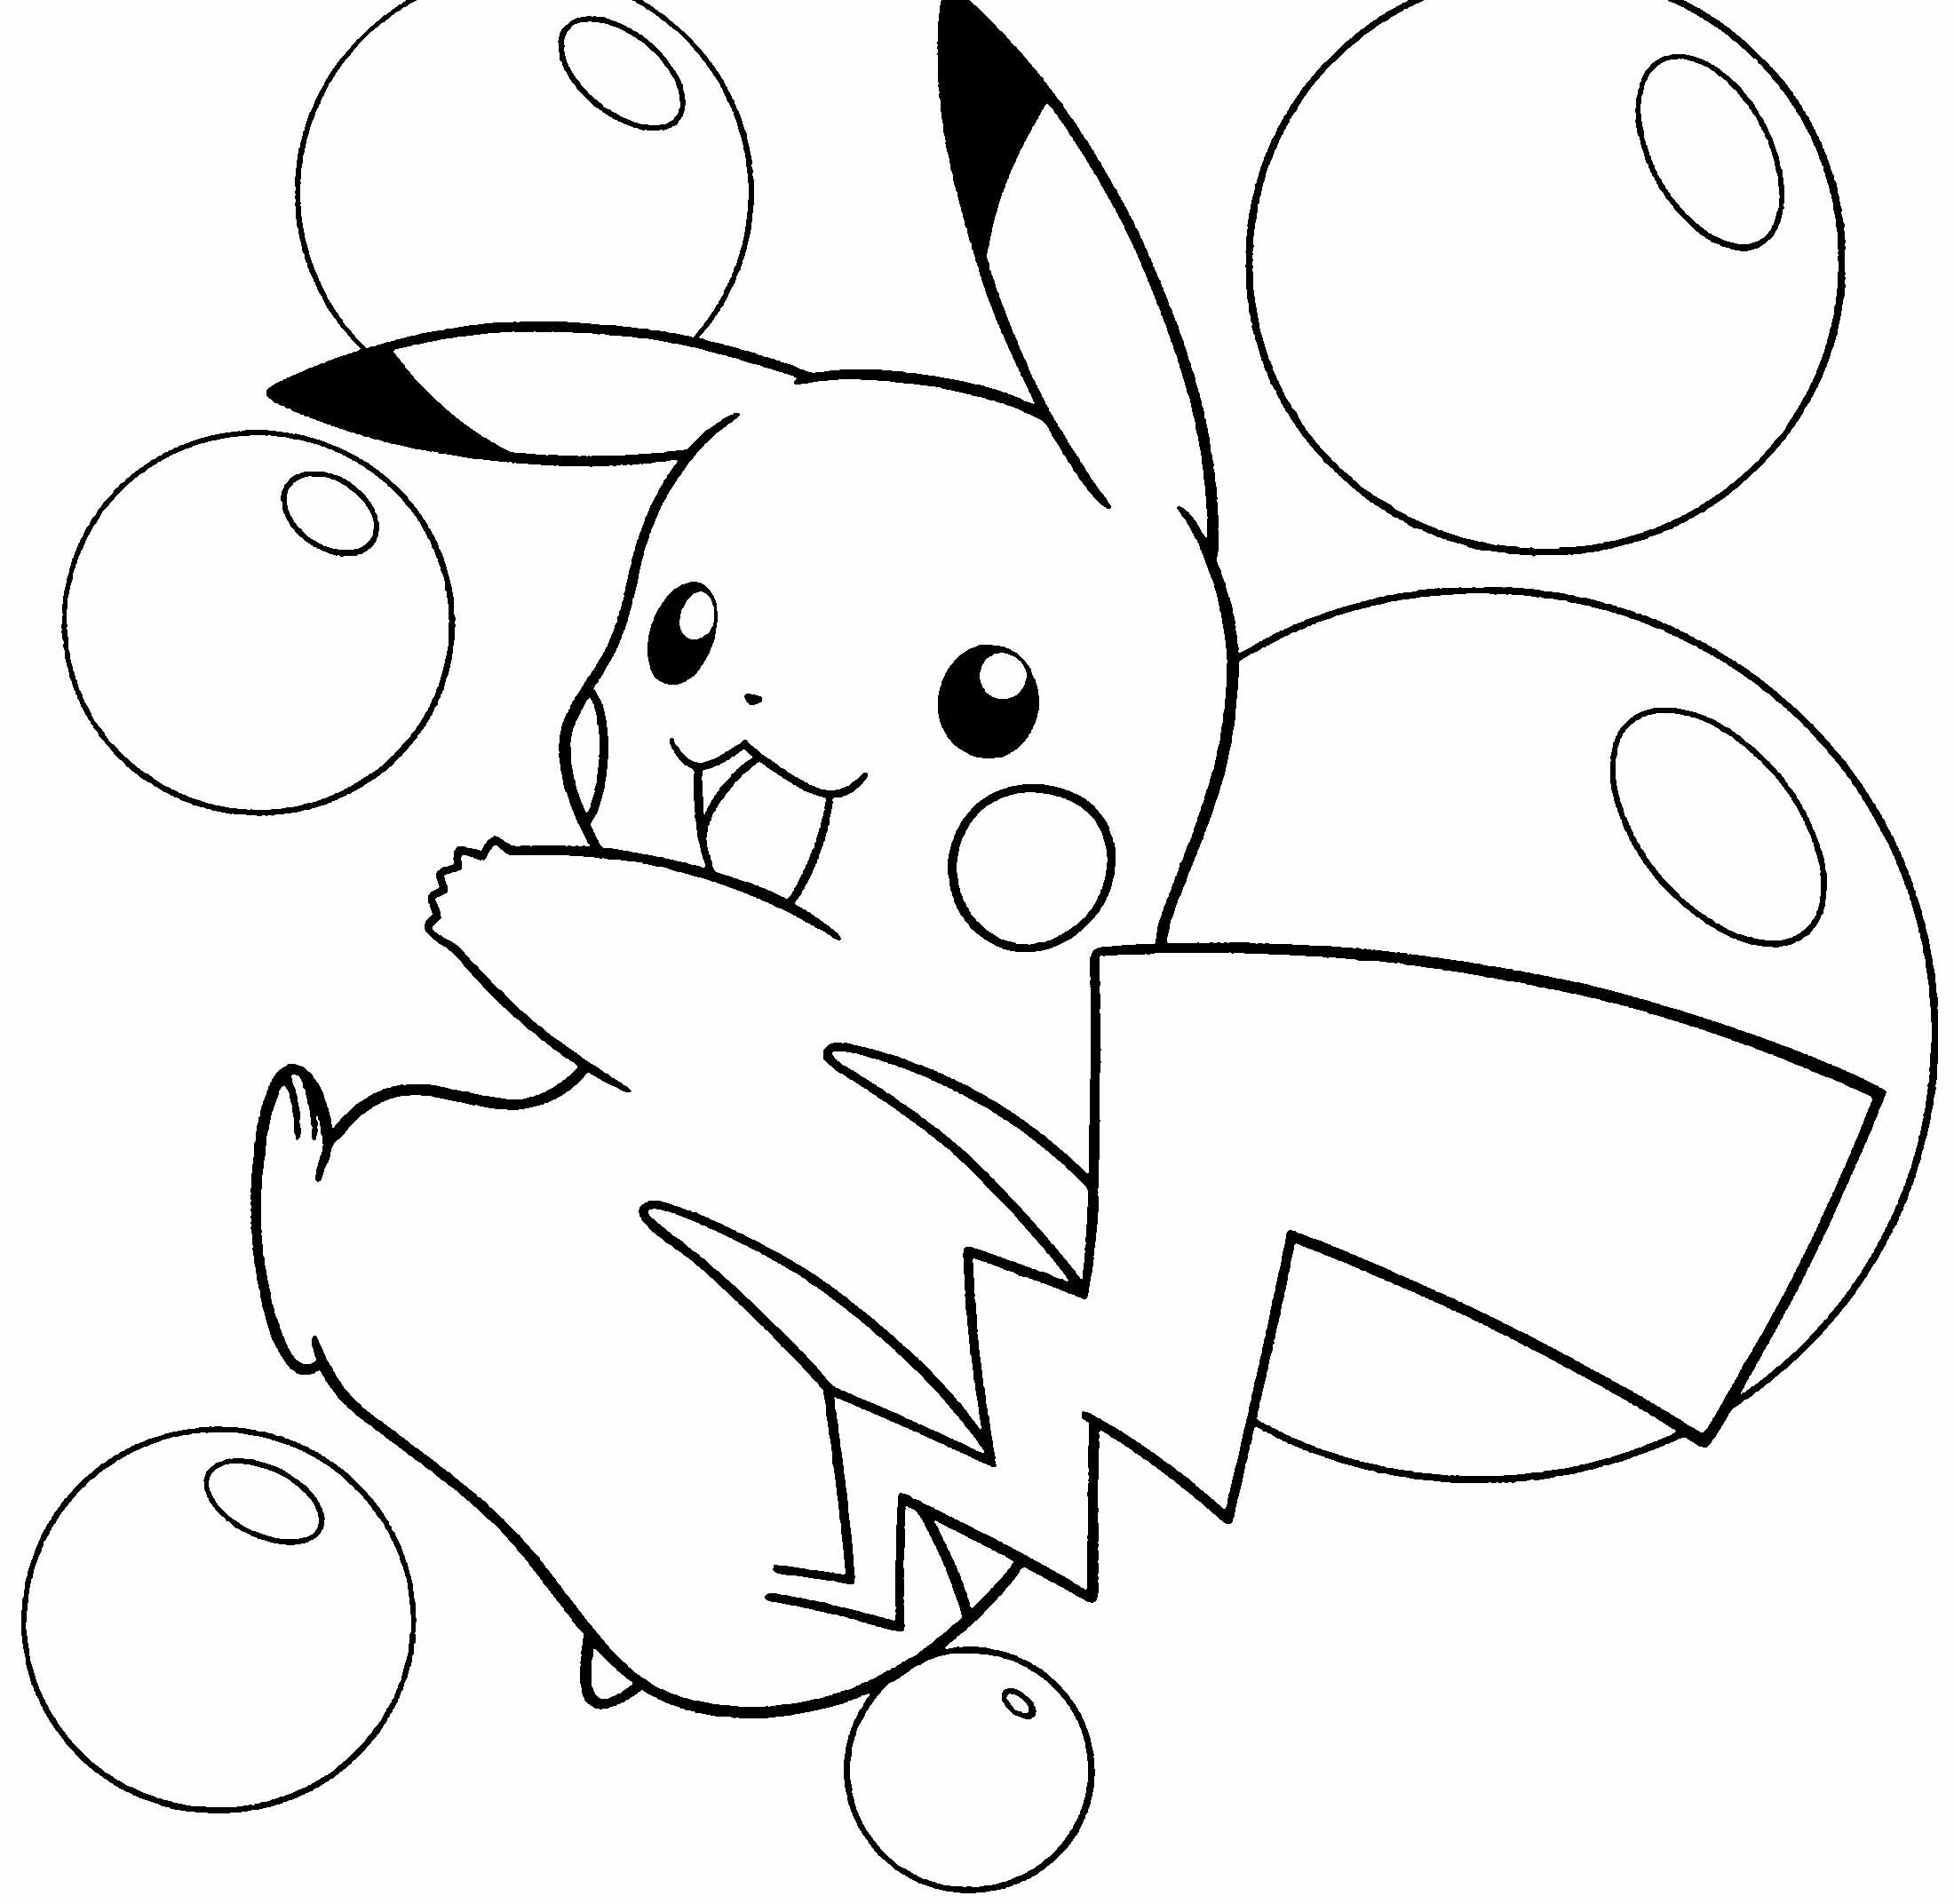 pikachu coloring pages pokemon pikachu coloring pages 1 - Grass Type Pokemon Coloring Pages